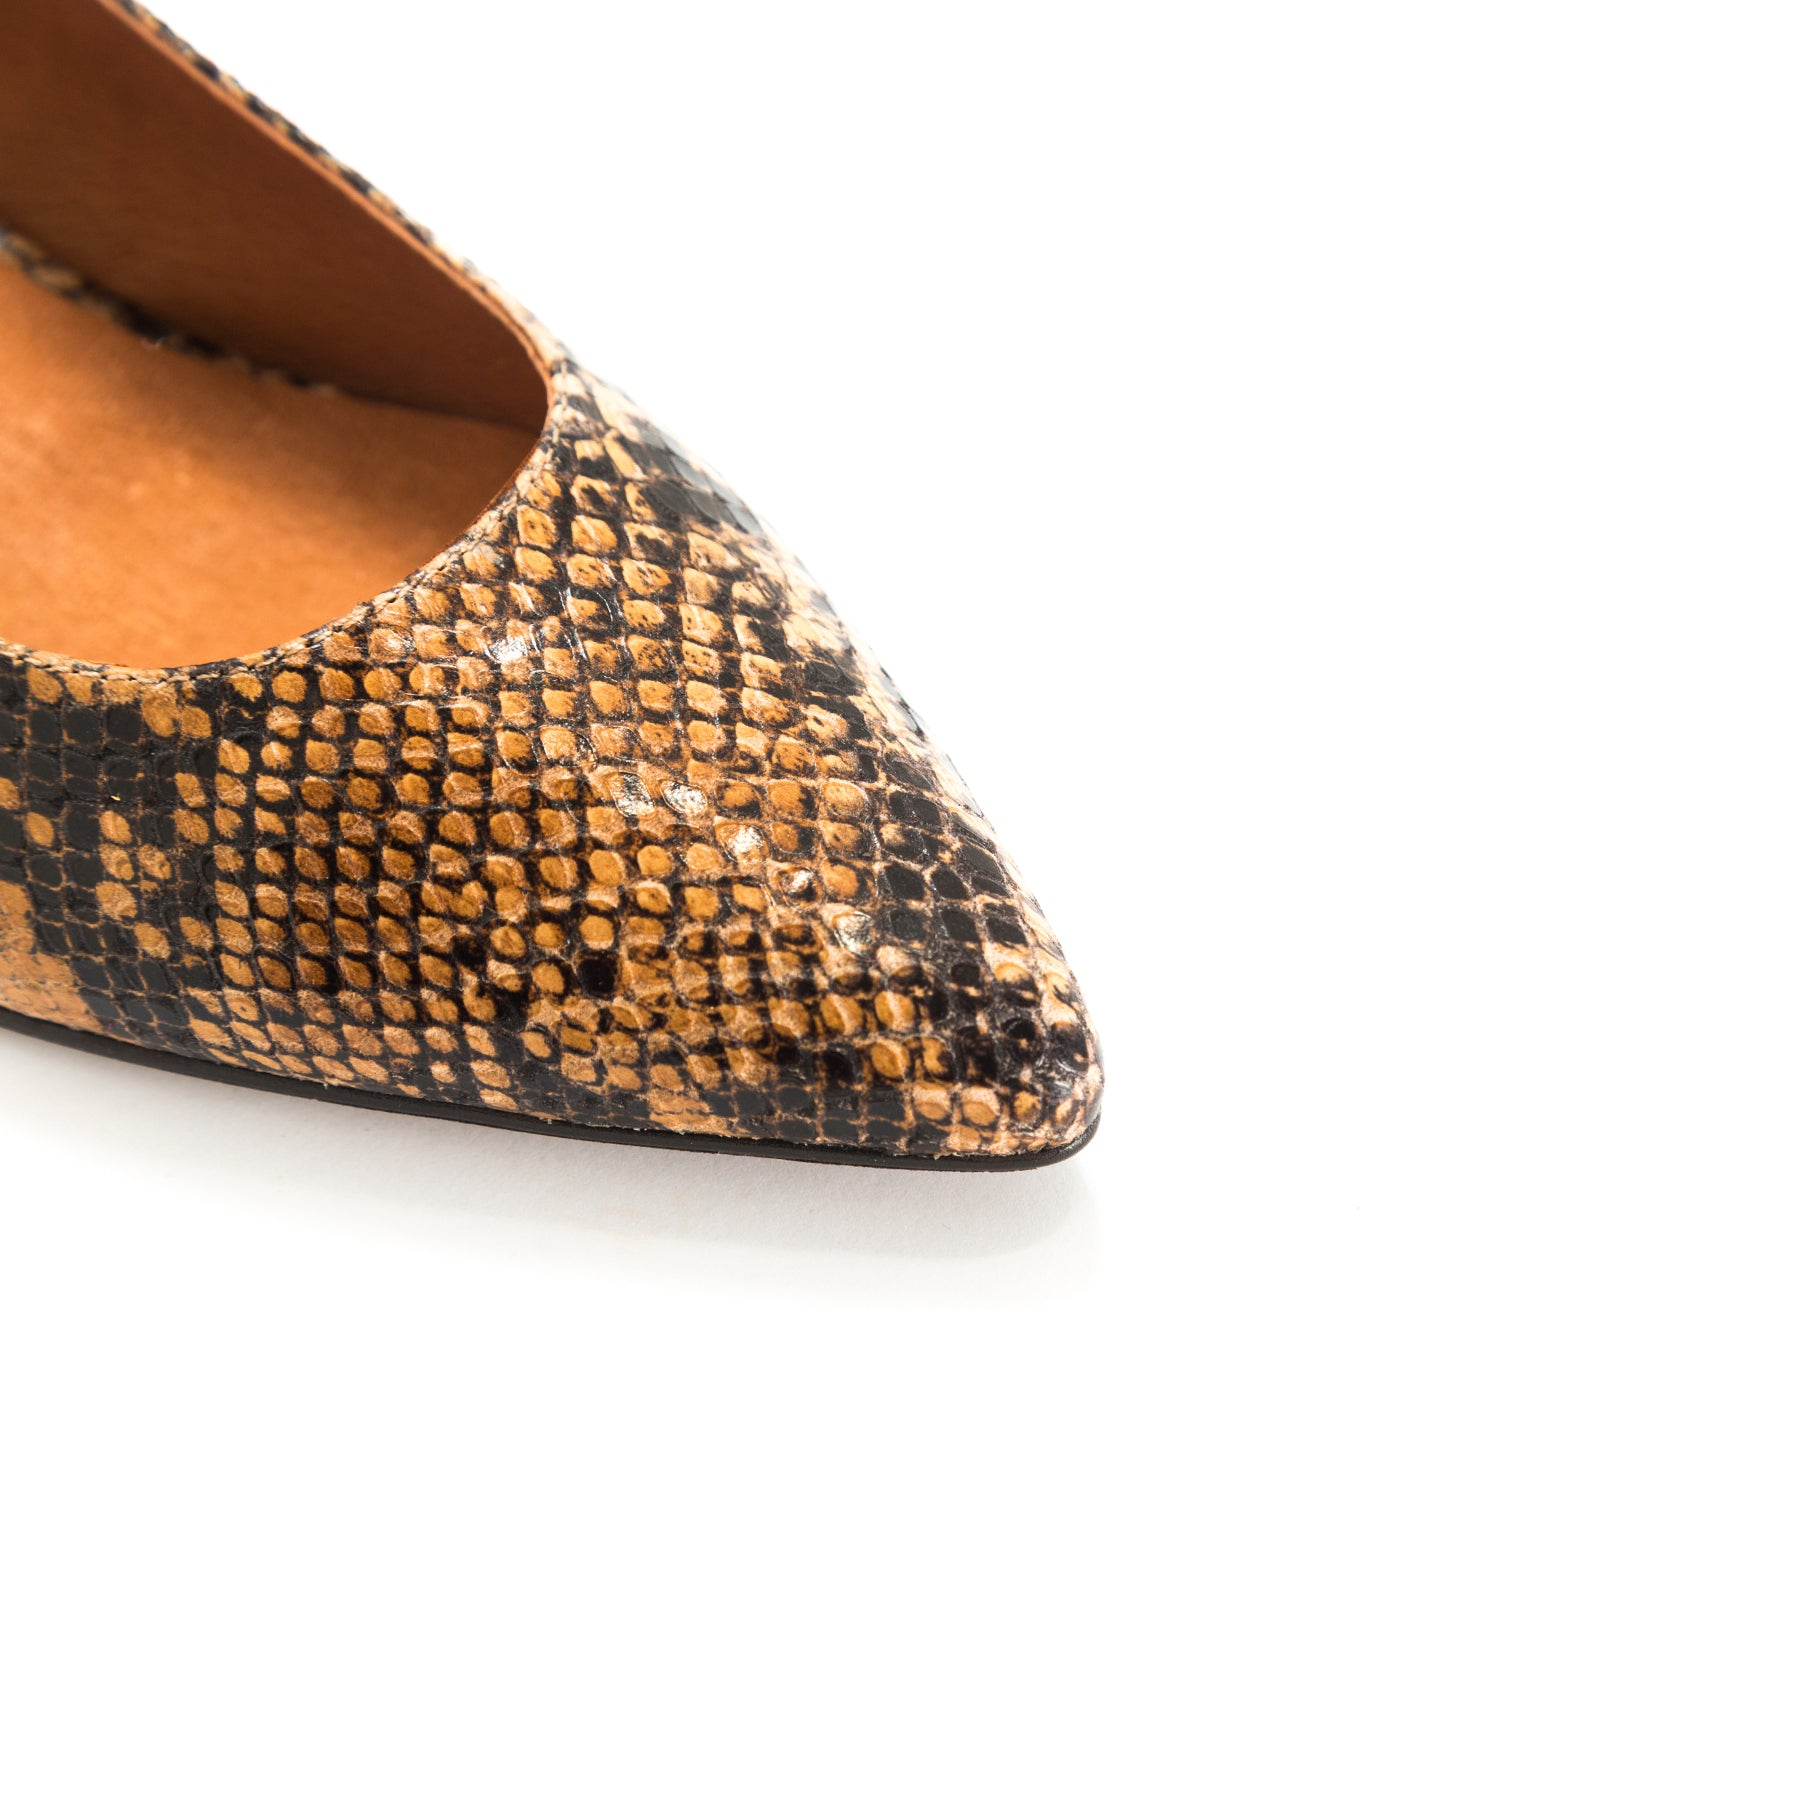 Ingrid Tan Snake Shoes